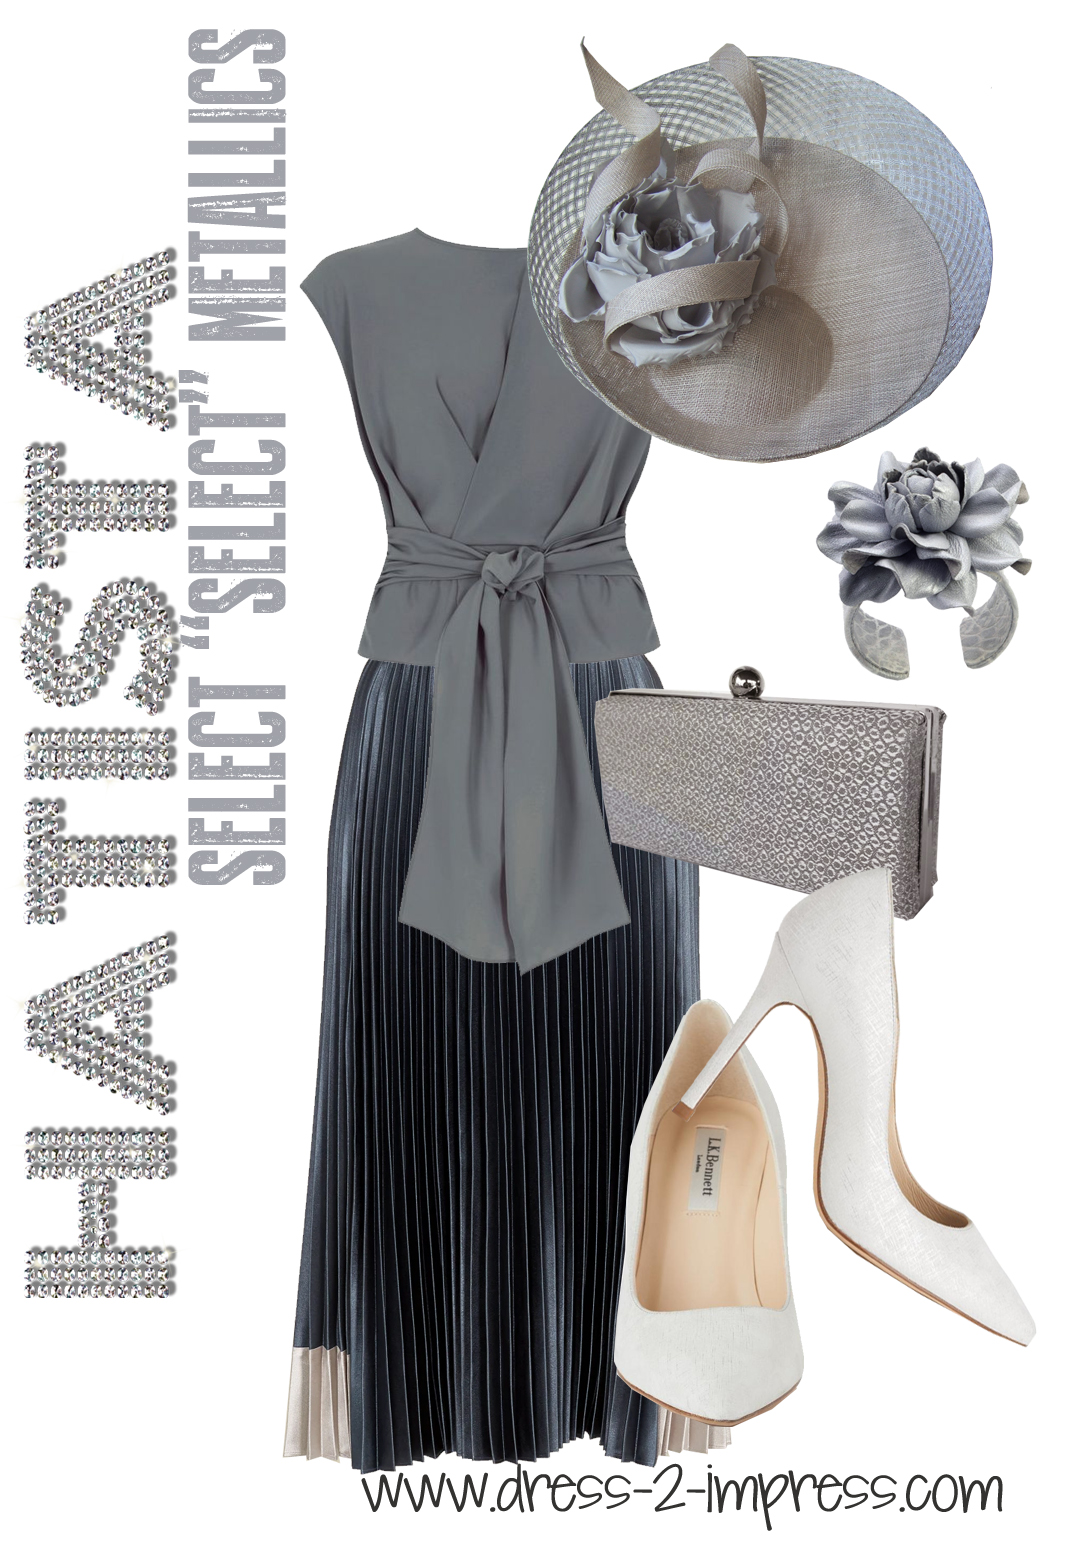 How to Wear Silver for Daywear - Tips on Wearing Metallics from THE HATISTA www.dress-2-impress.com #wearsilver #metallics #fashionista #philiptreacy #christopherkane #styleguide #outfittips